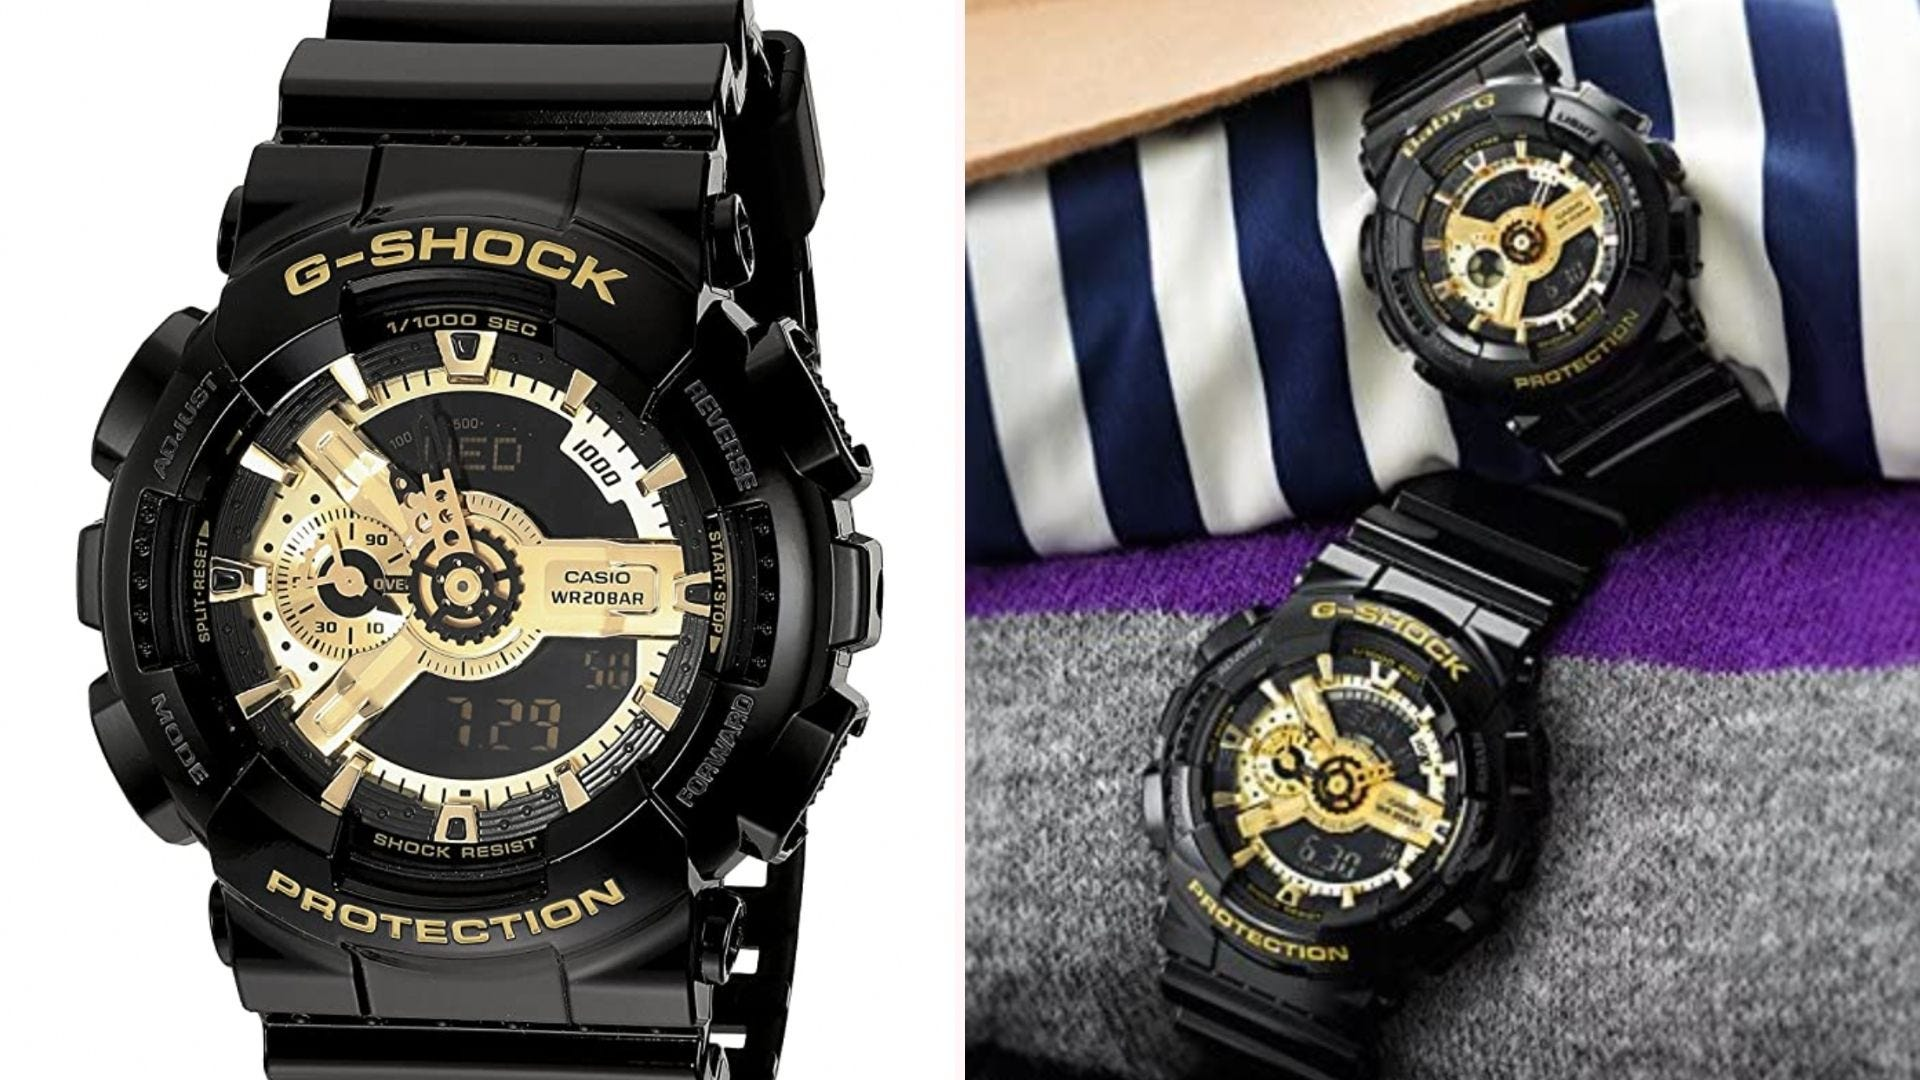 a black digital and analog G-shock watch with gold accents